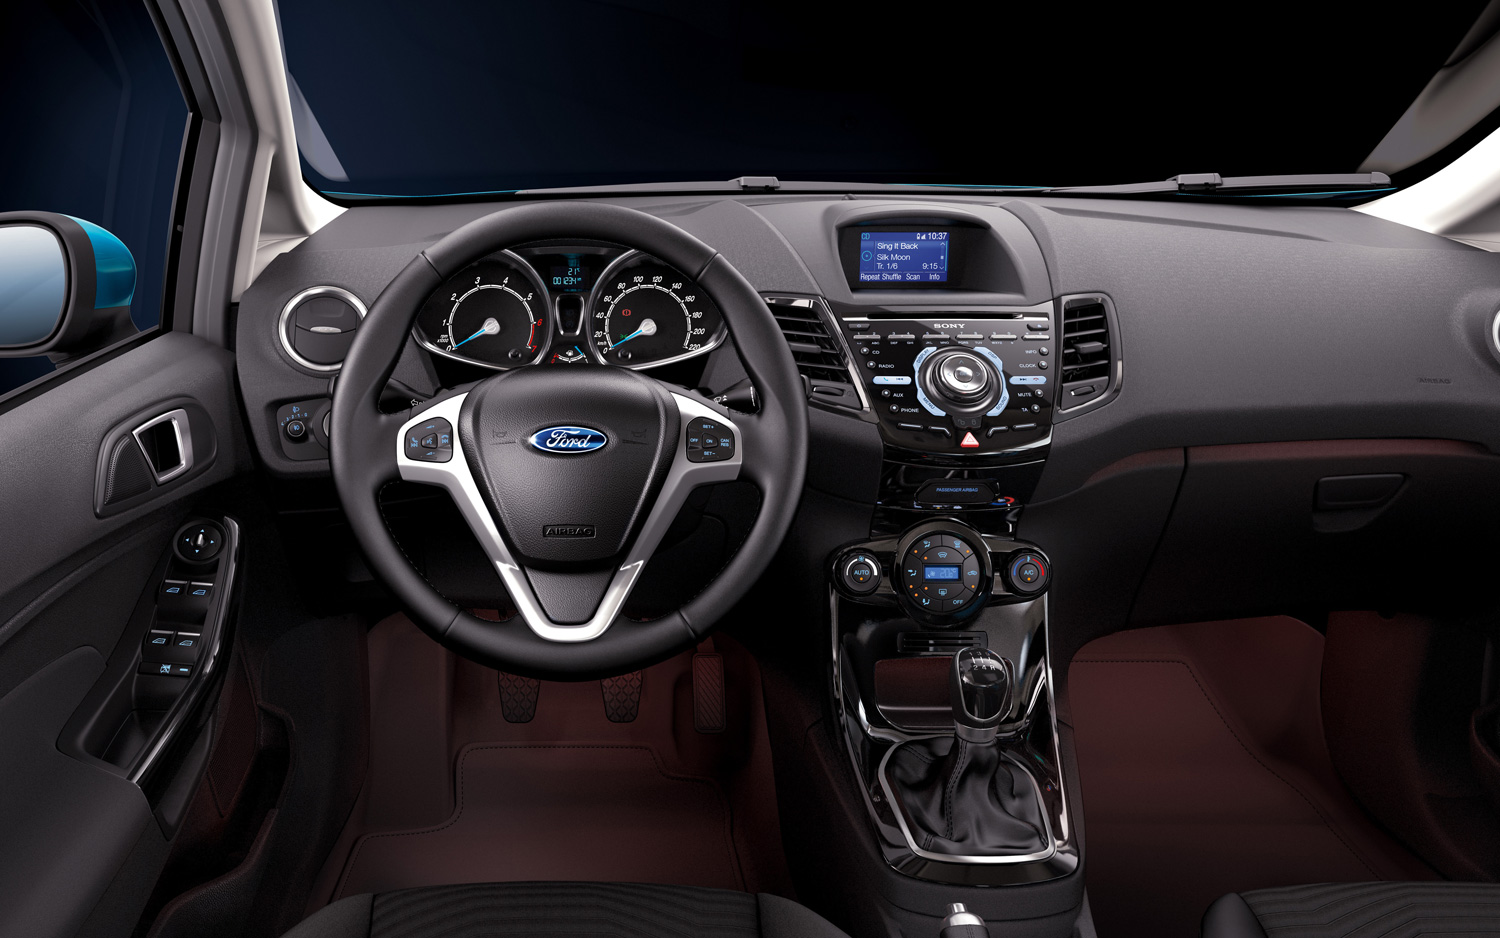 Ford fiesta photo - 2